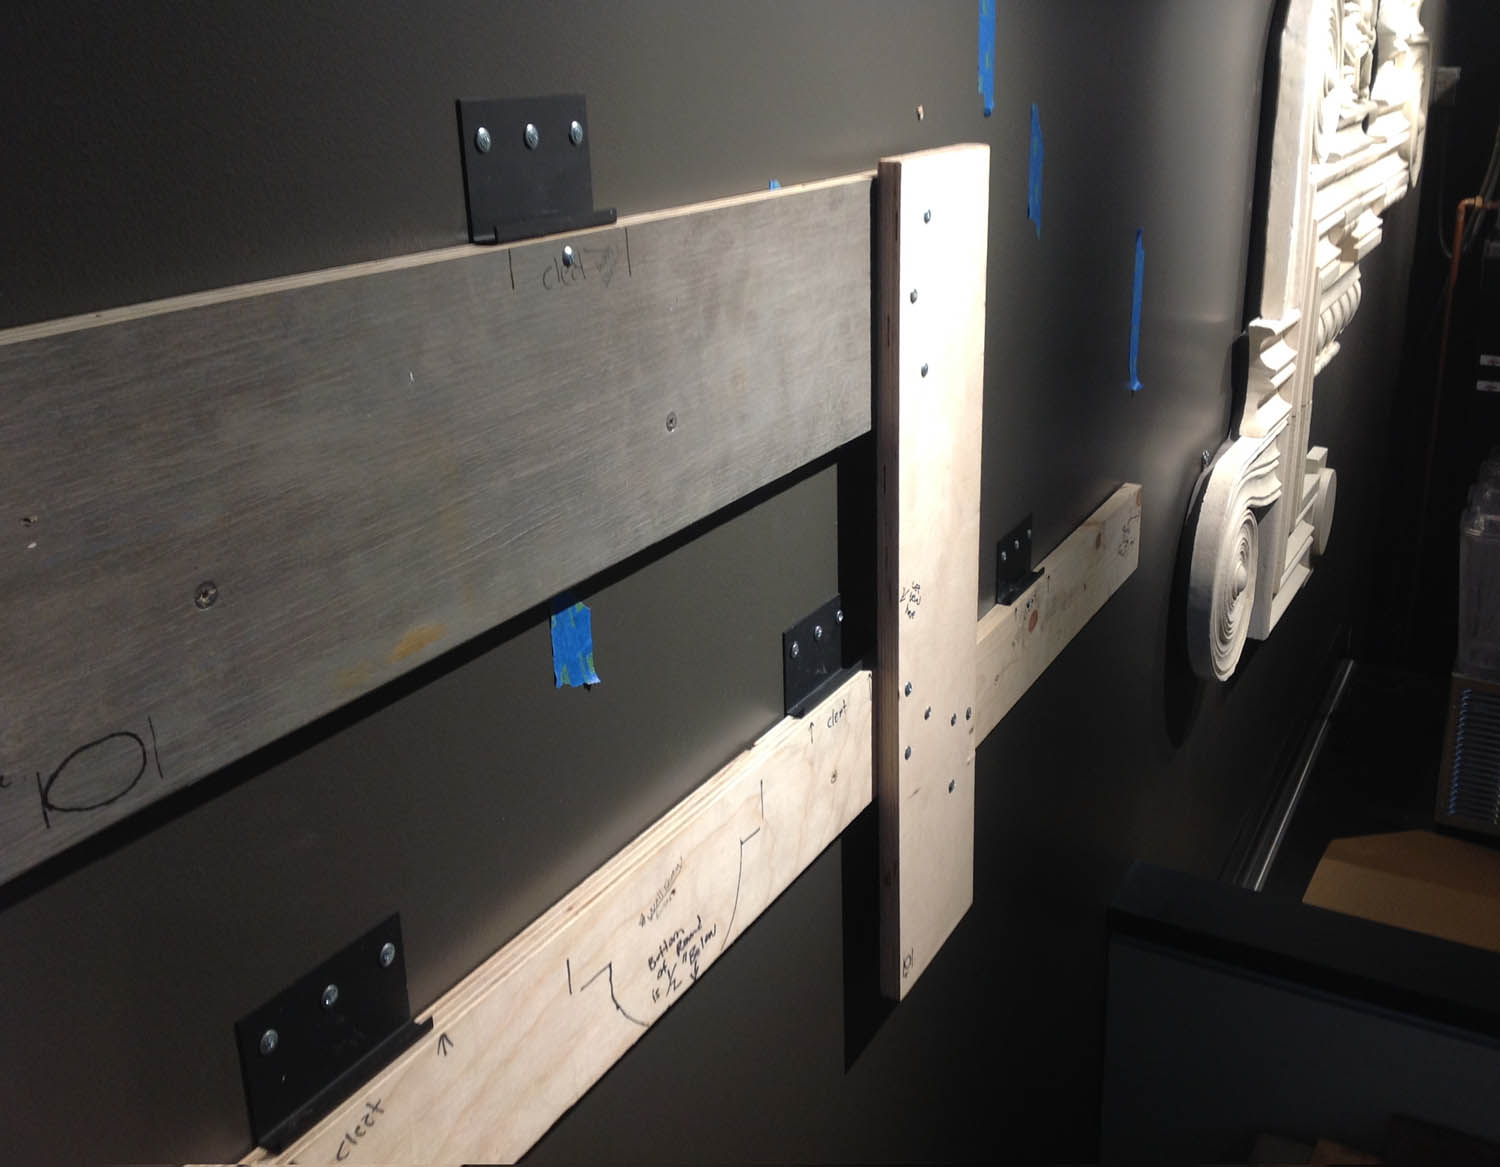 Installation templates were made for each cluster. The templates were temporarily screwed onto the wall during installation, and served to identify the exact position for each hidden metal cleat. The cleats locked into a slot that was previously made in the plywood backing. Cleats fabricated by  Bishop Metals